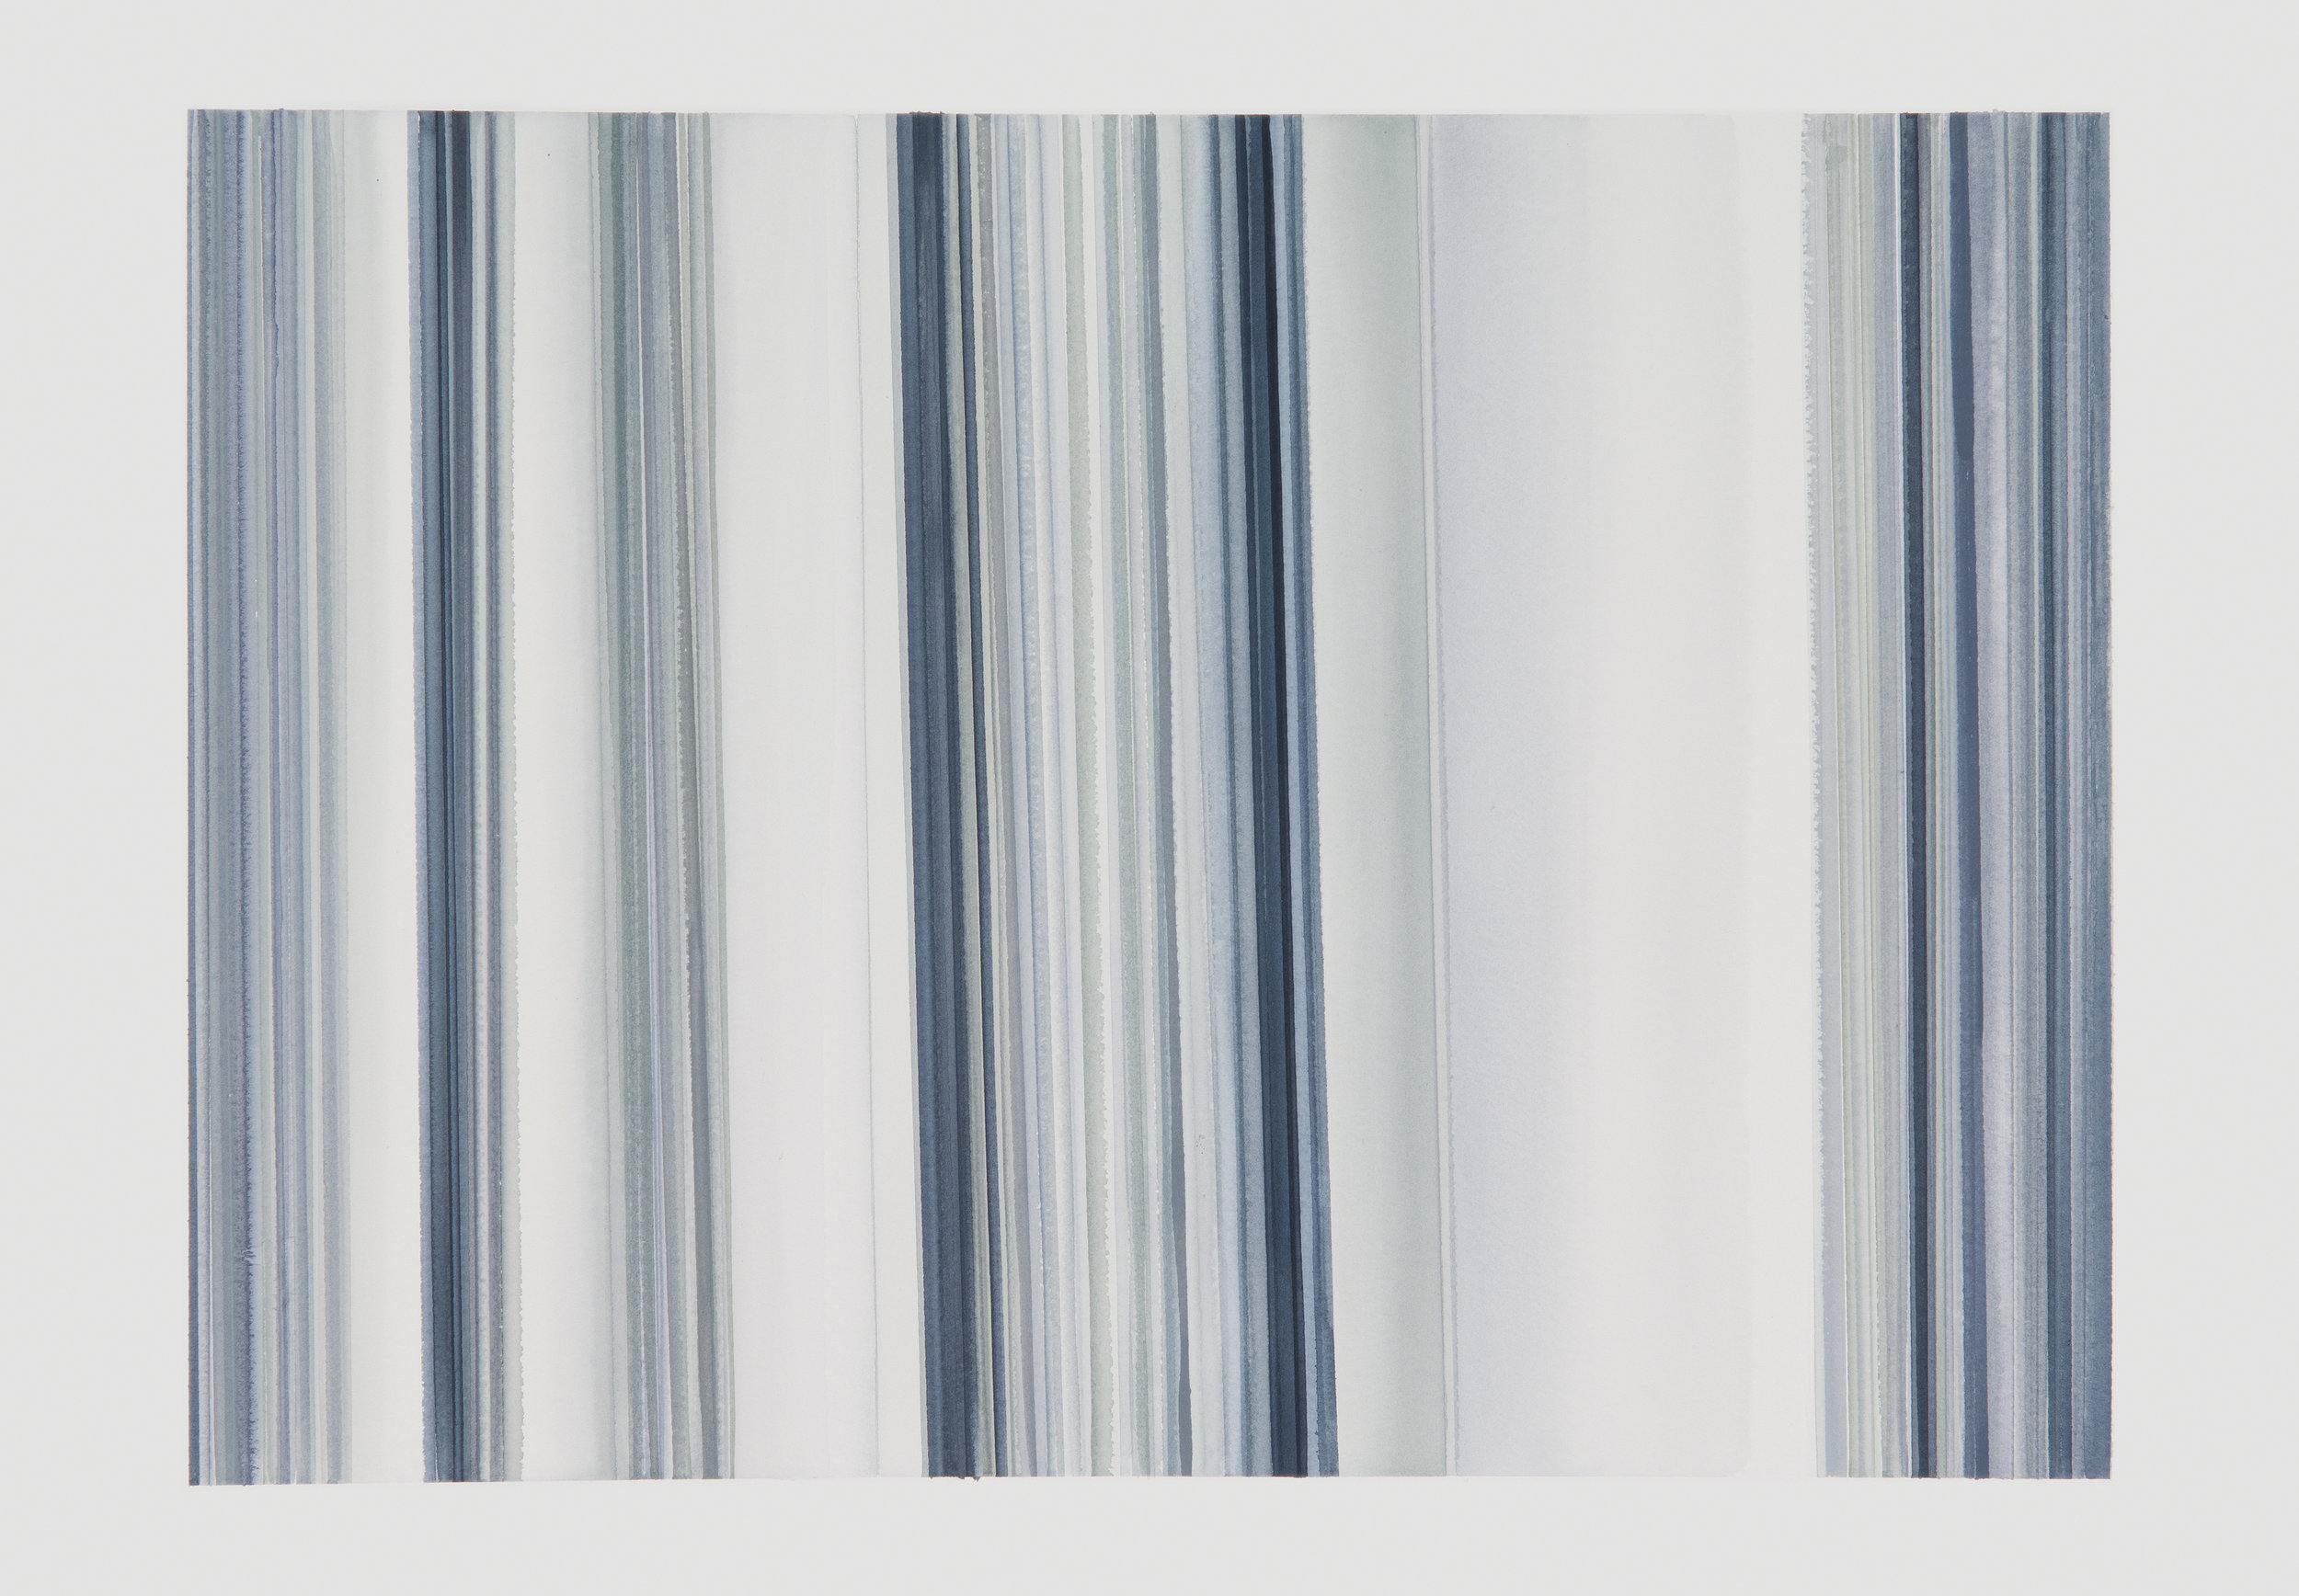 Grey Lines II, 2017, watercolor on paper, 22 x 30 in, $3,000, SOLD